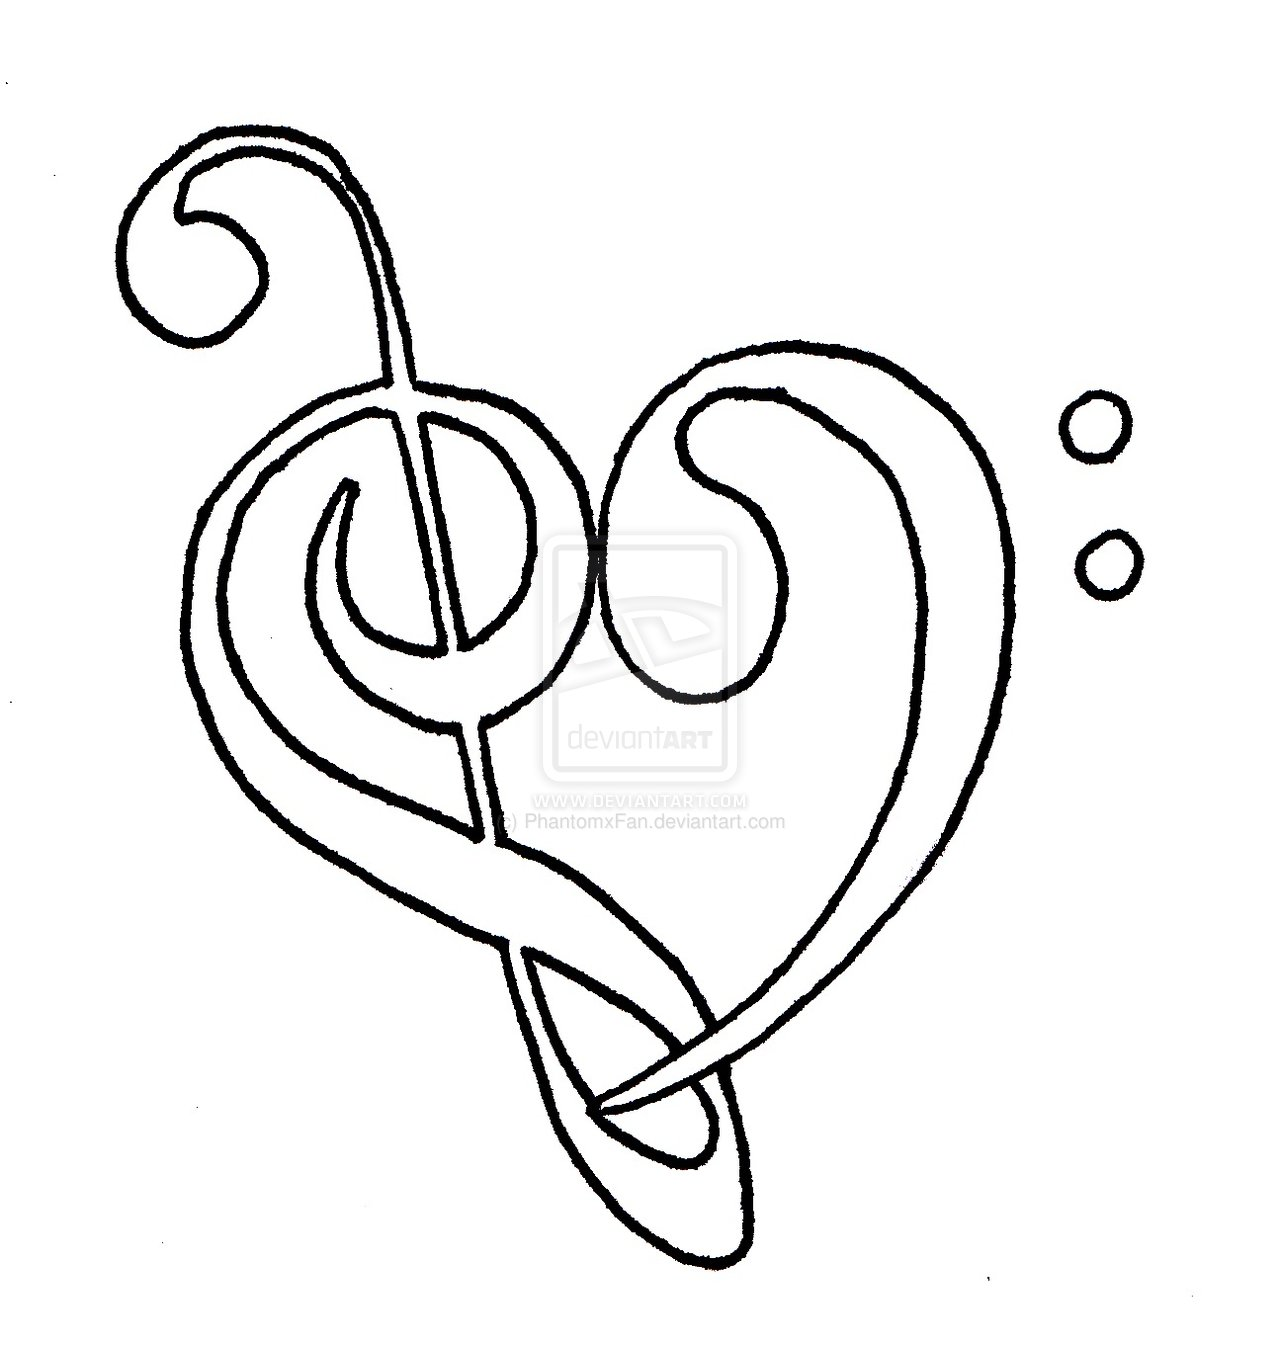 Heart Tattoo Line Drawing : Heart designs cool music images tattoo drawing